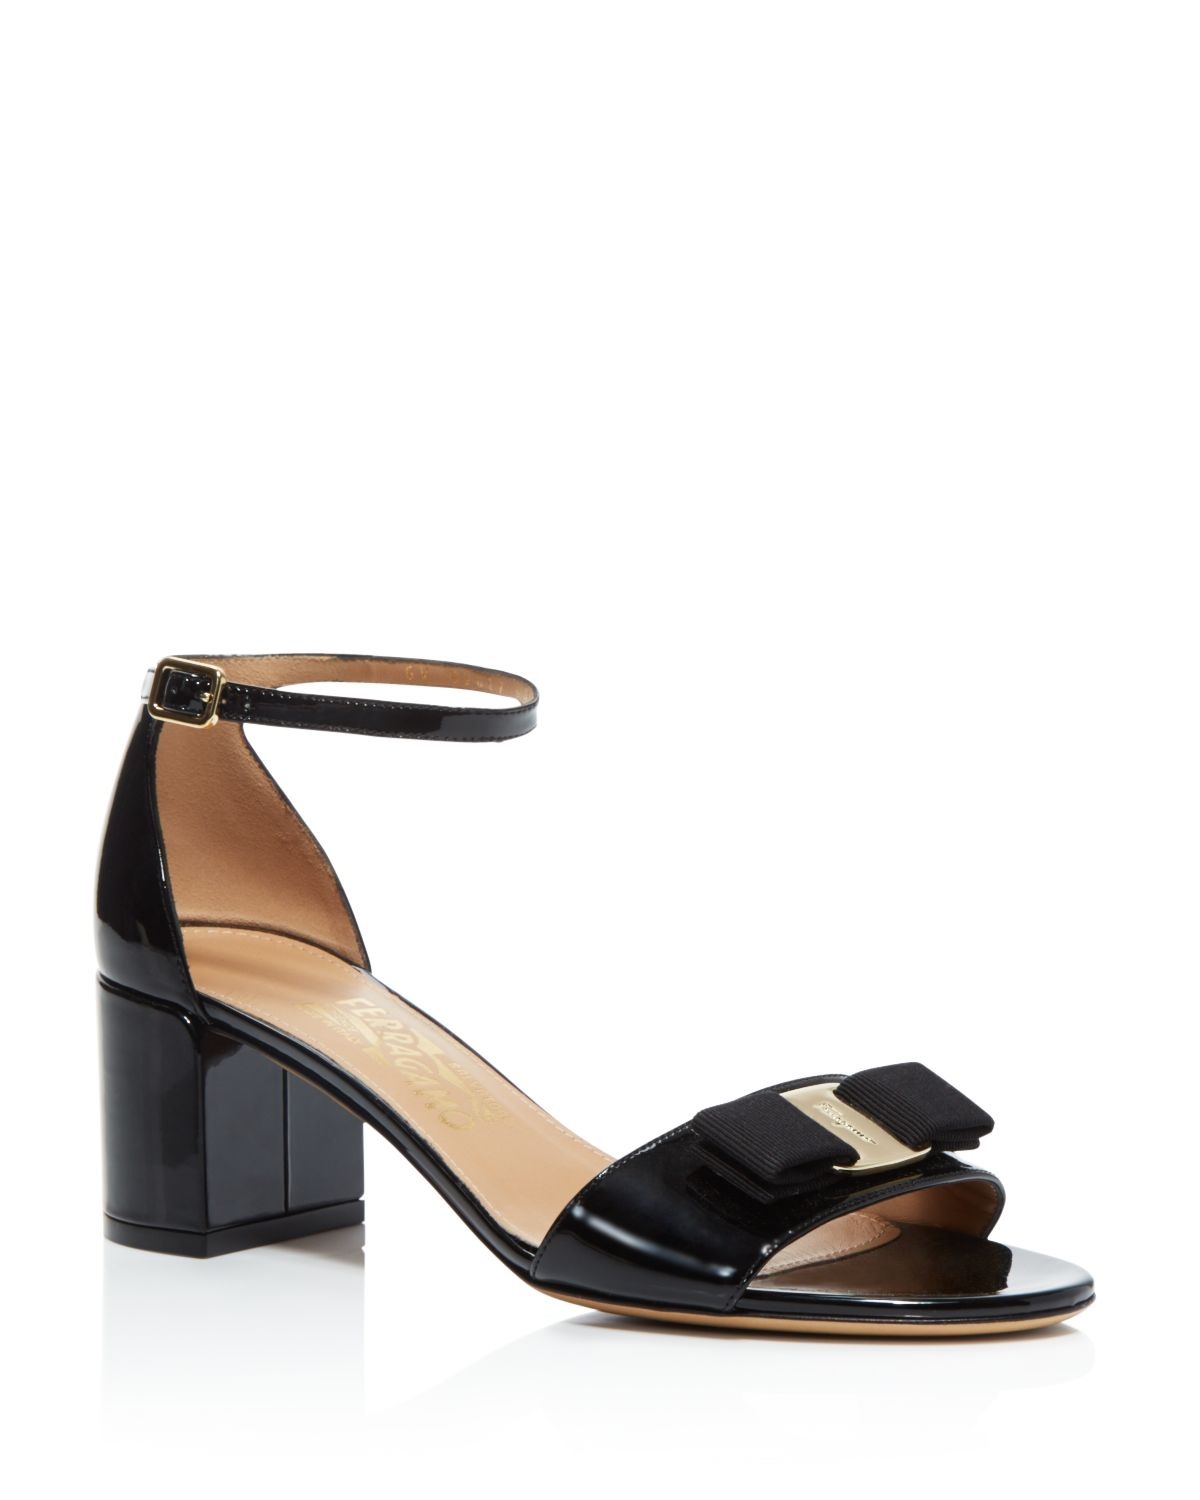 Salvatore Ferragamo Suede Bow Sandals